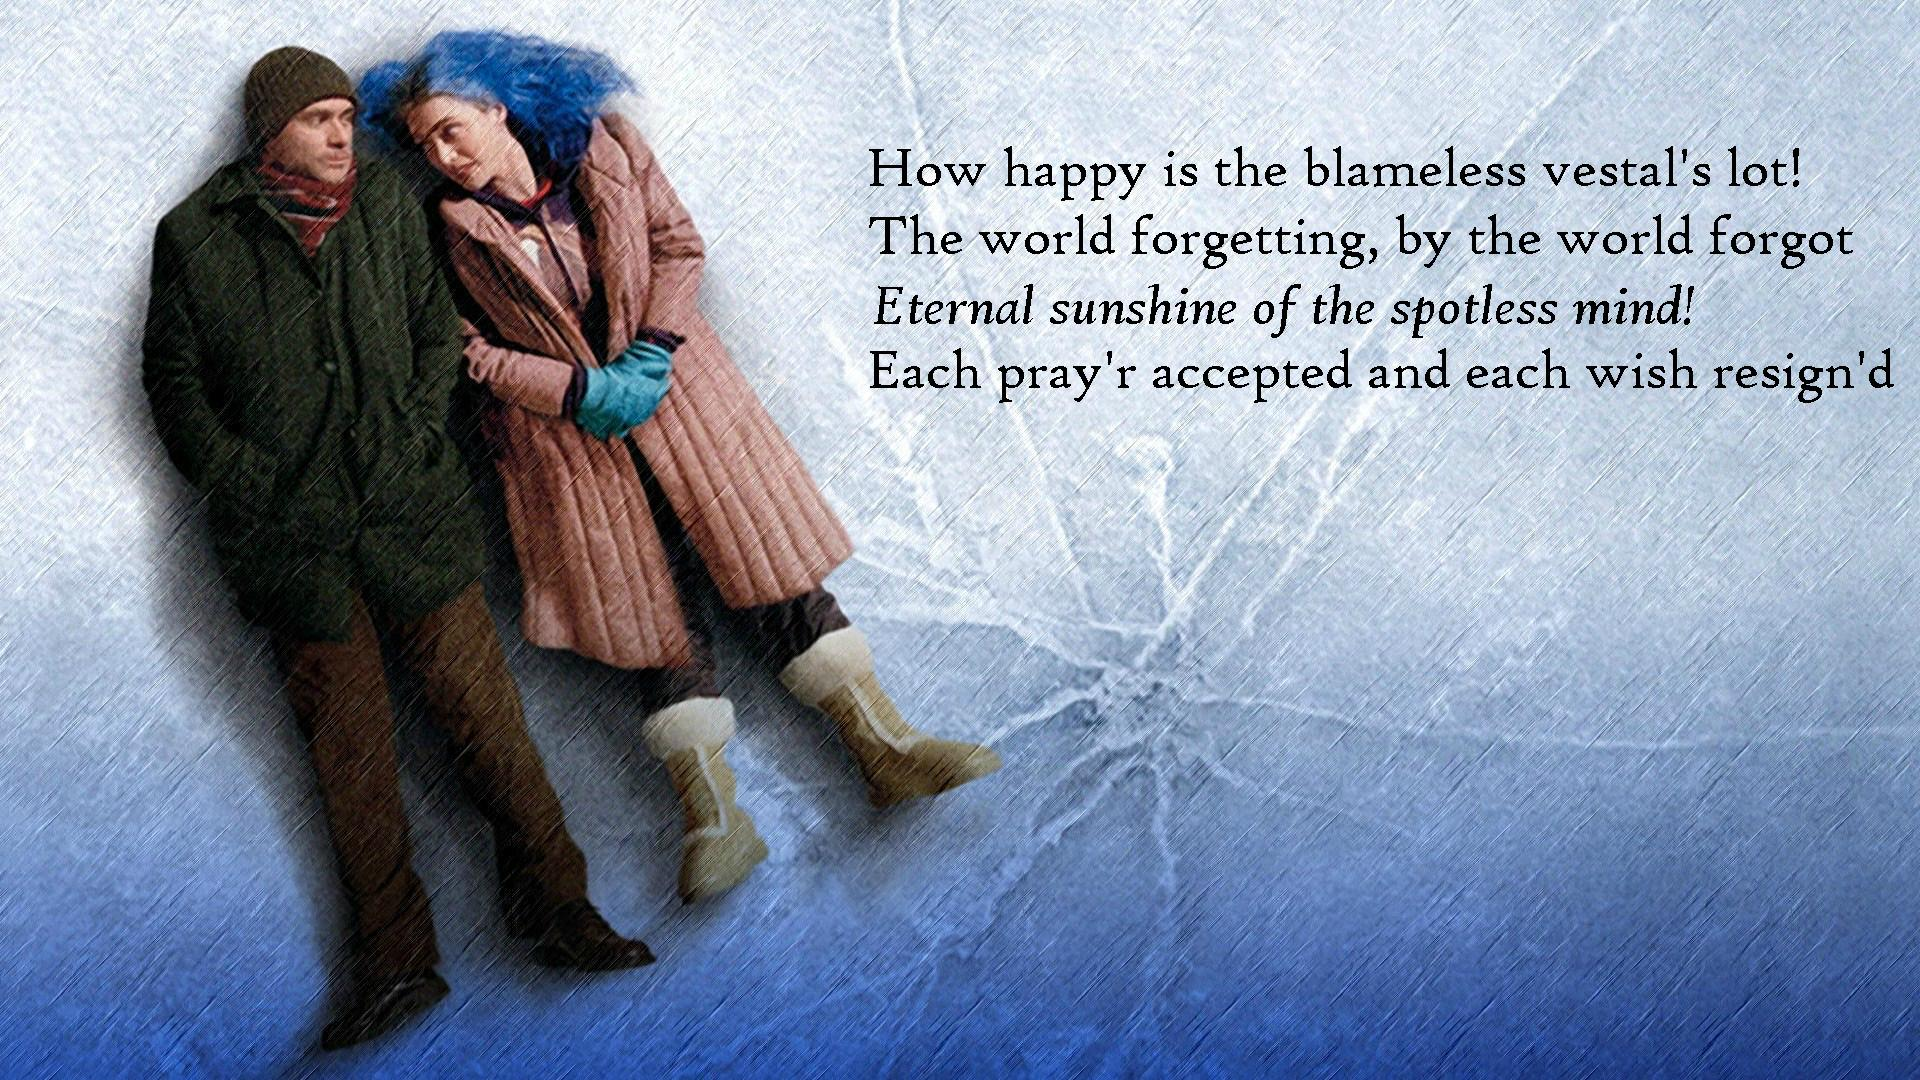 Eternal-Sunshine-of-the-Spotless-Mind-1920x1080-wallpaper-wpc5804612